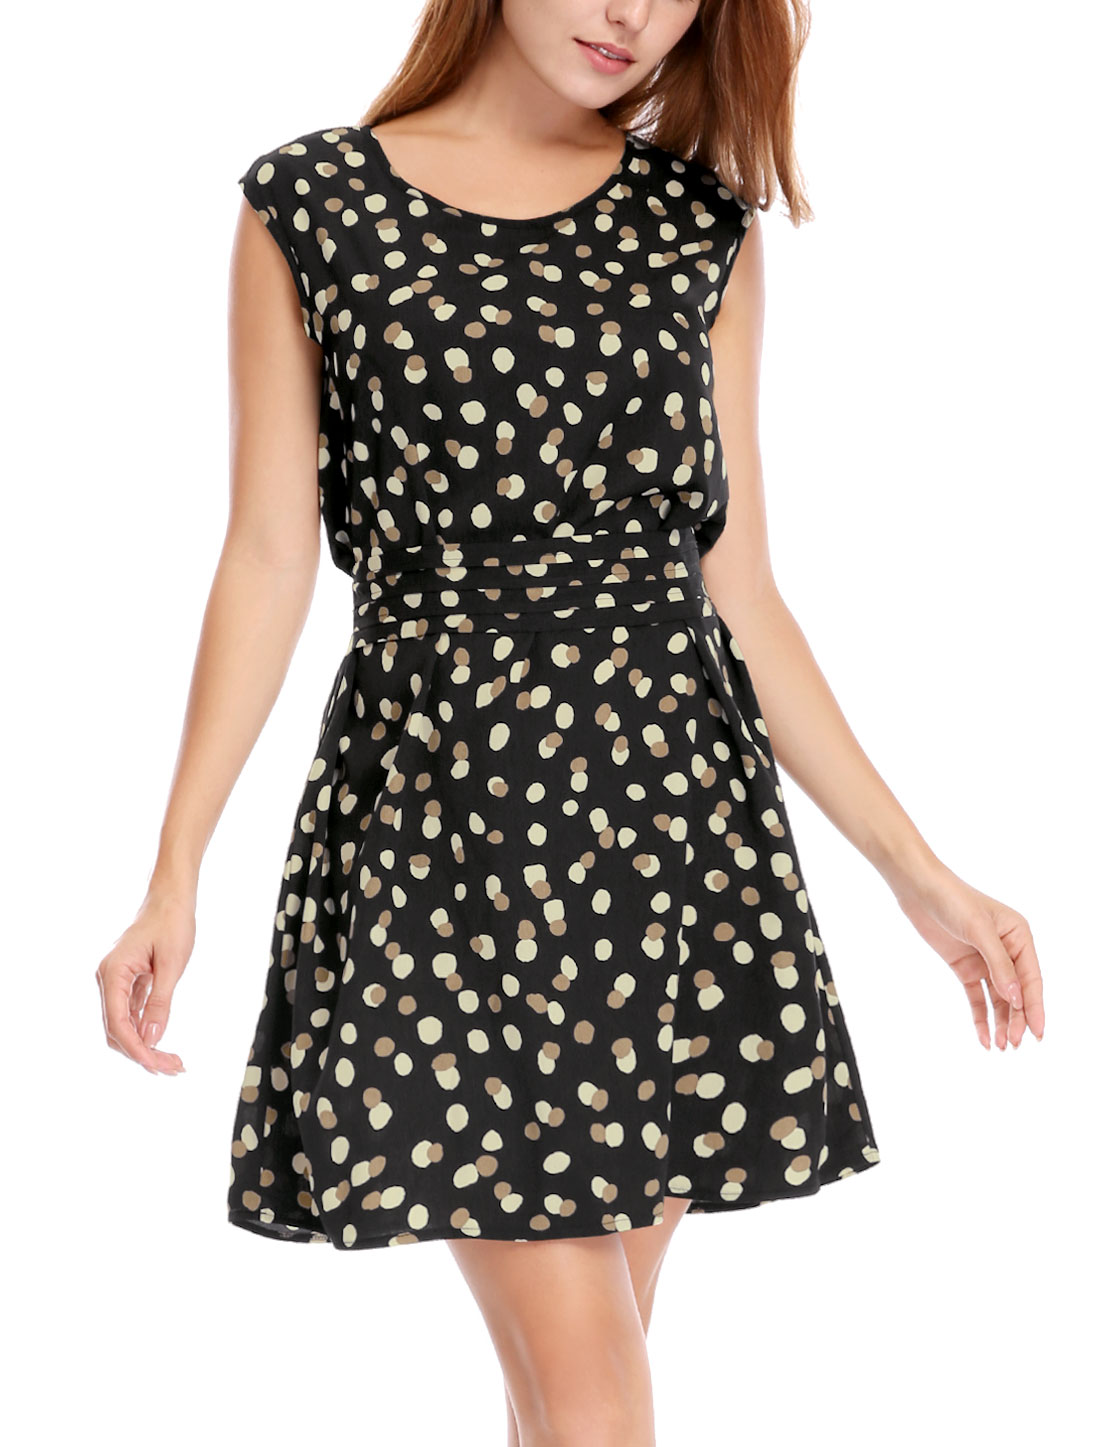 Women Dots Sleeveless Belted Above Knee A Line Dress Black XS